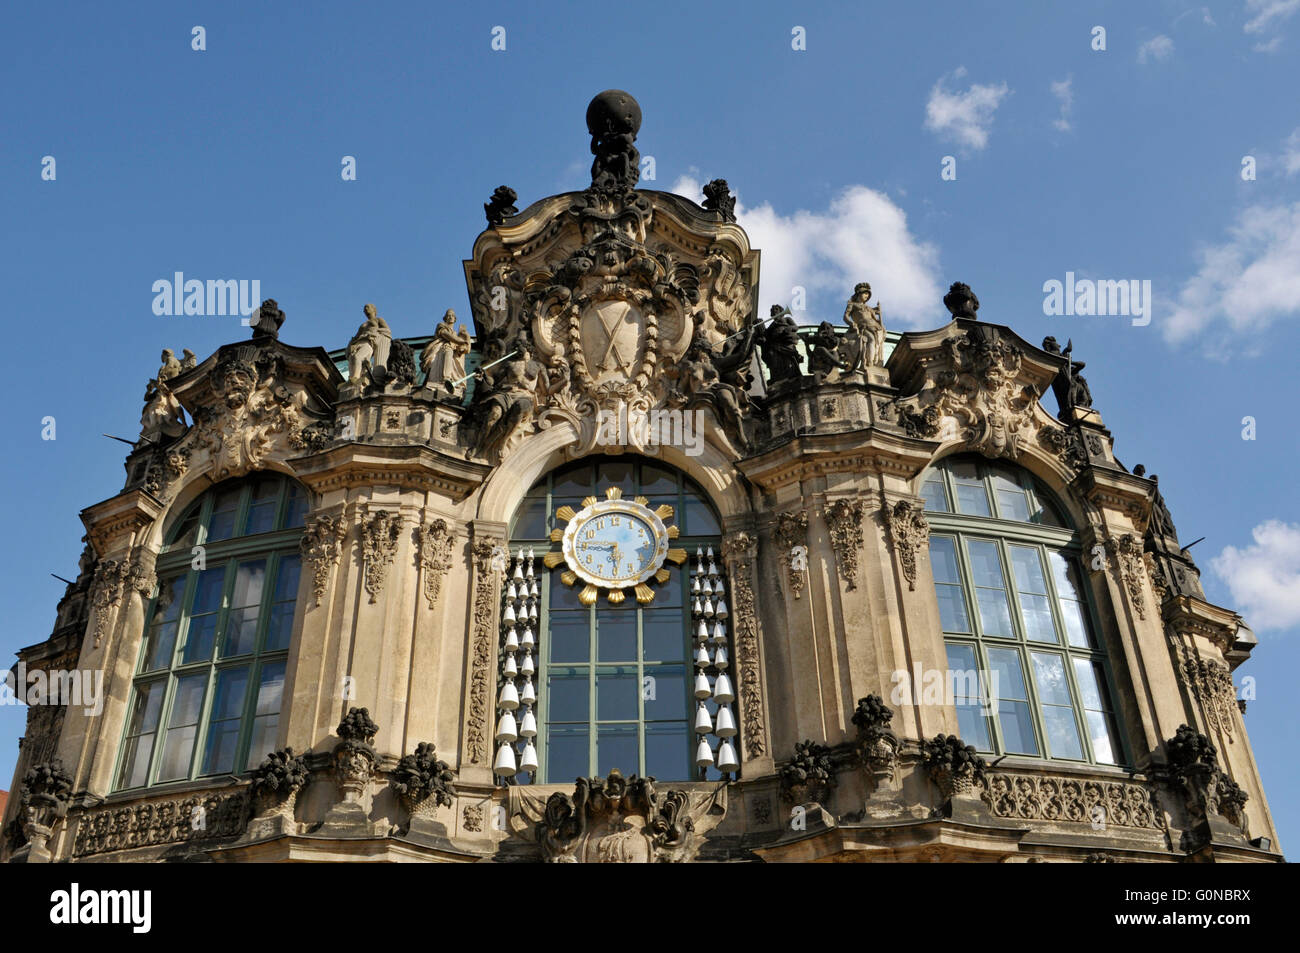 detail of Rampart Pavilion, Zwinger Palace, Dresden, Germany - Stock Image